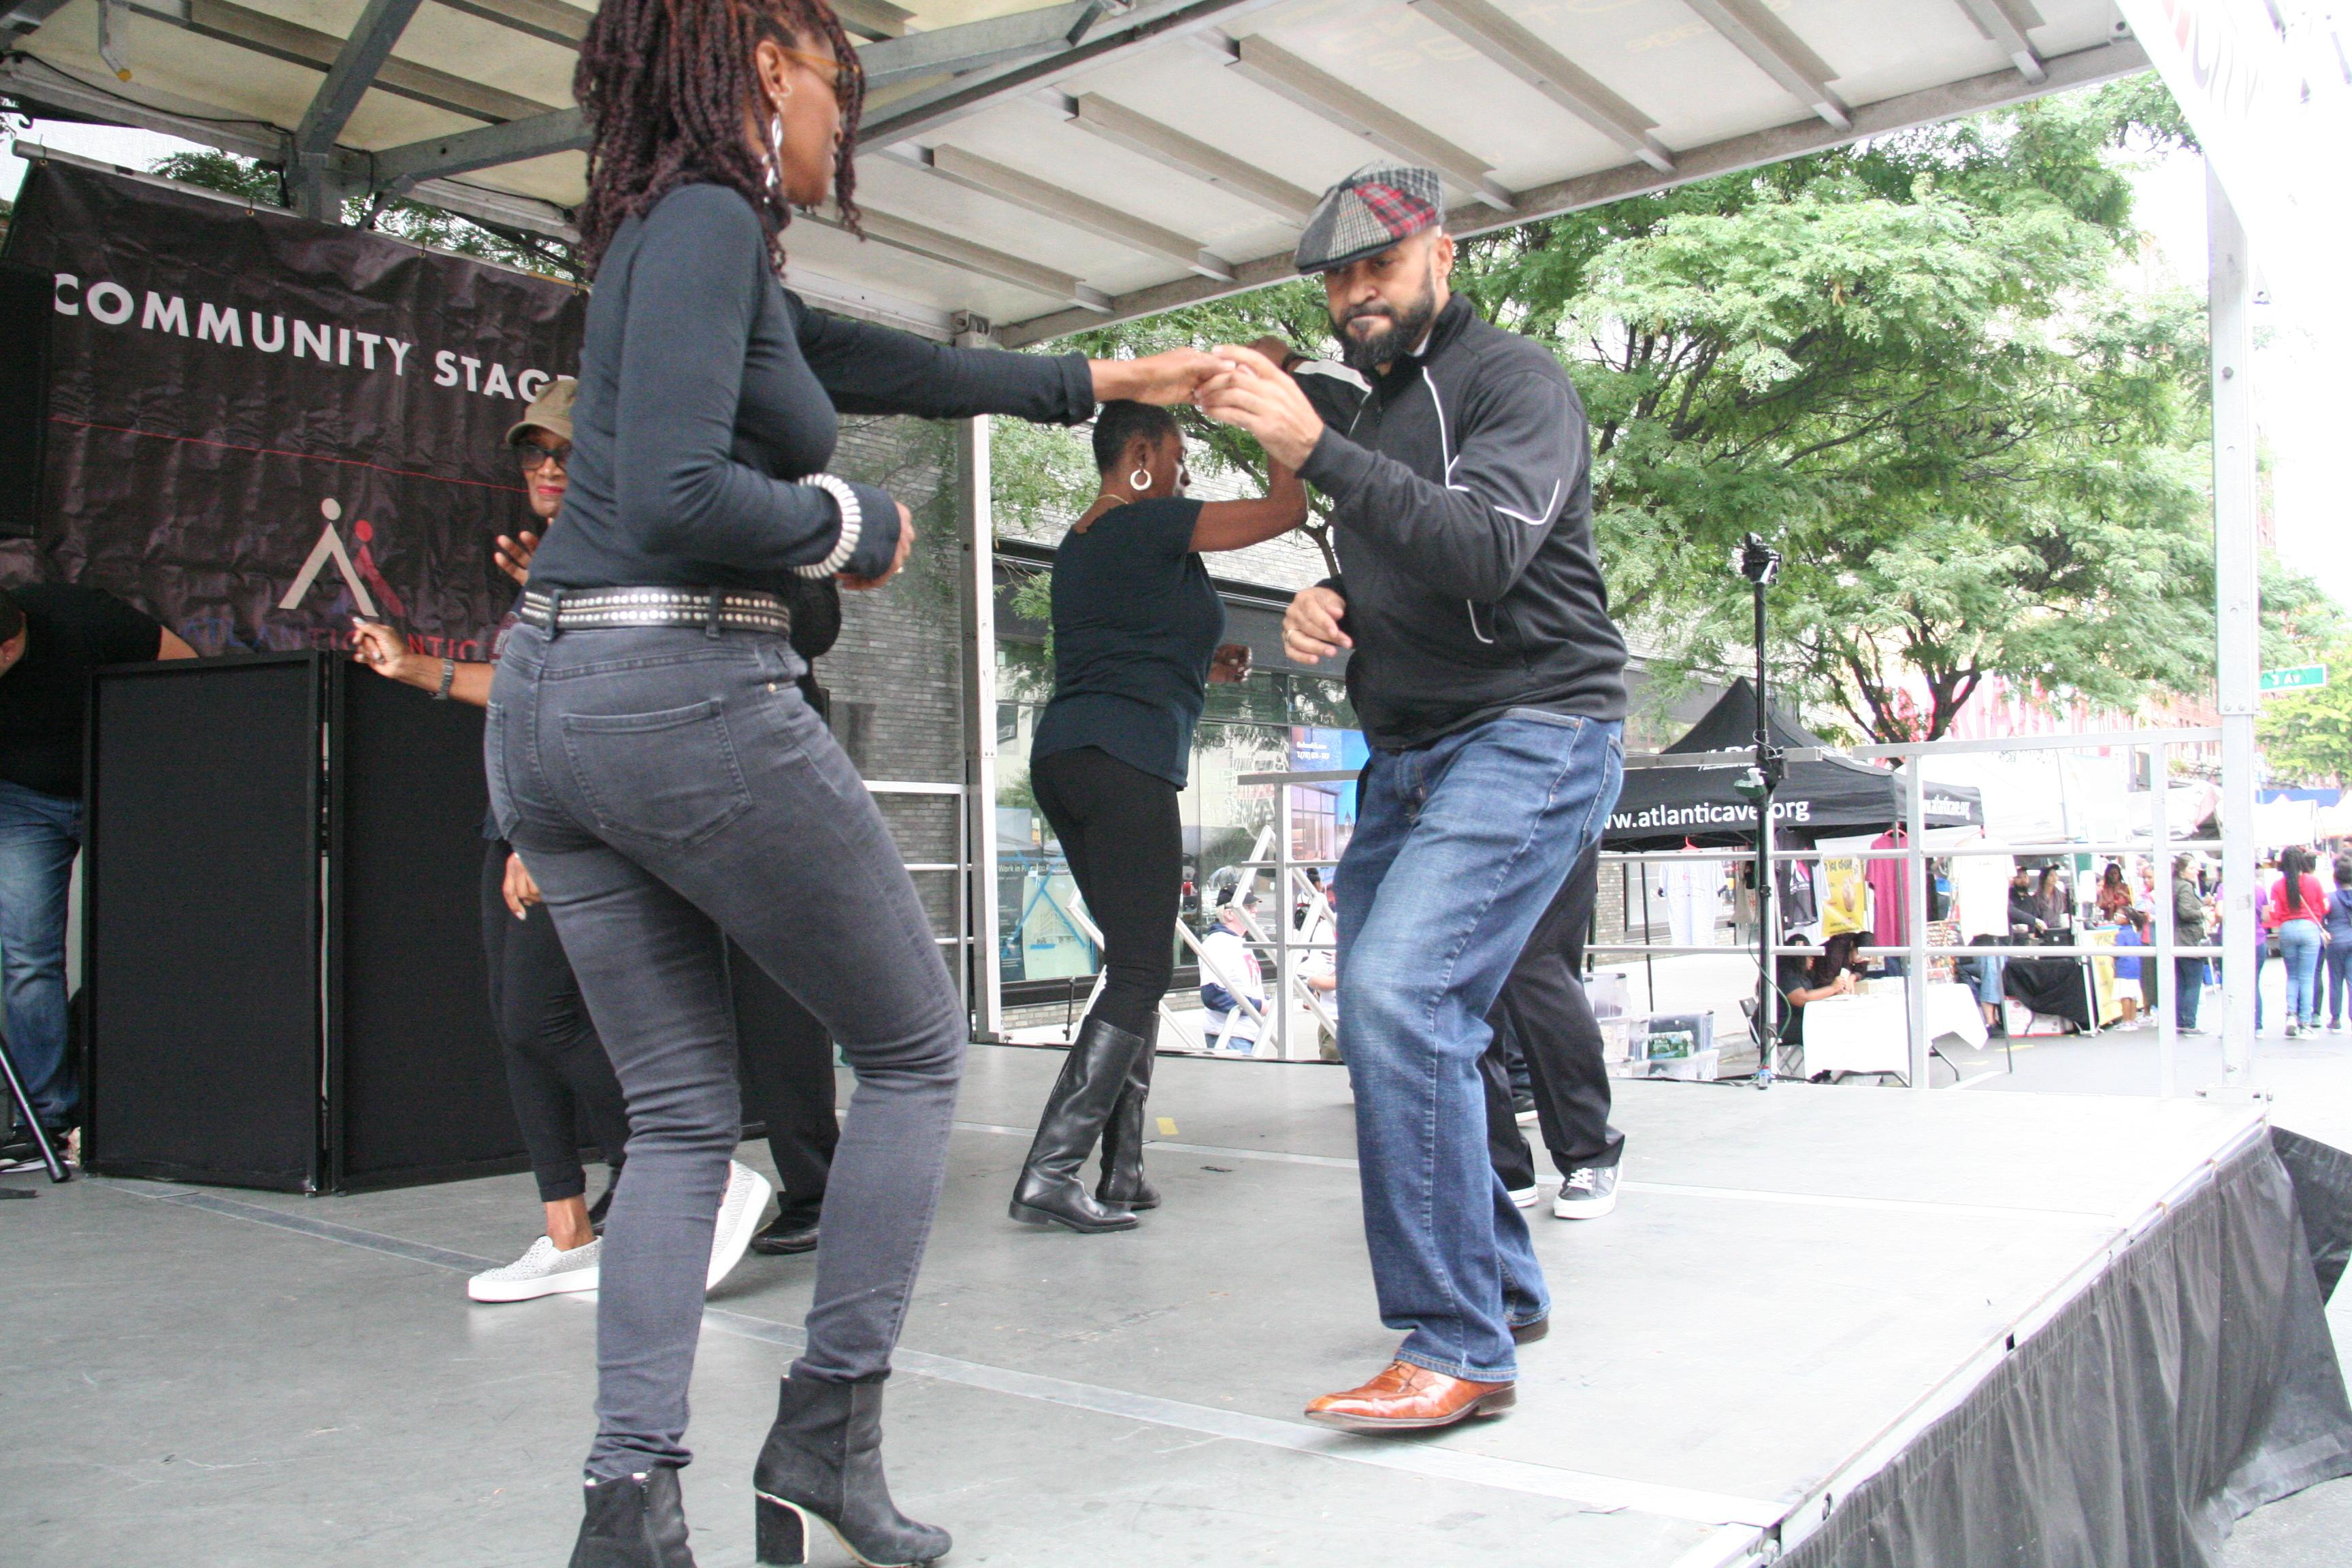 Chicago Style Steppin'